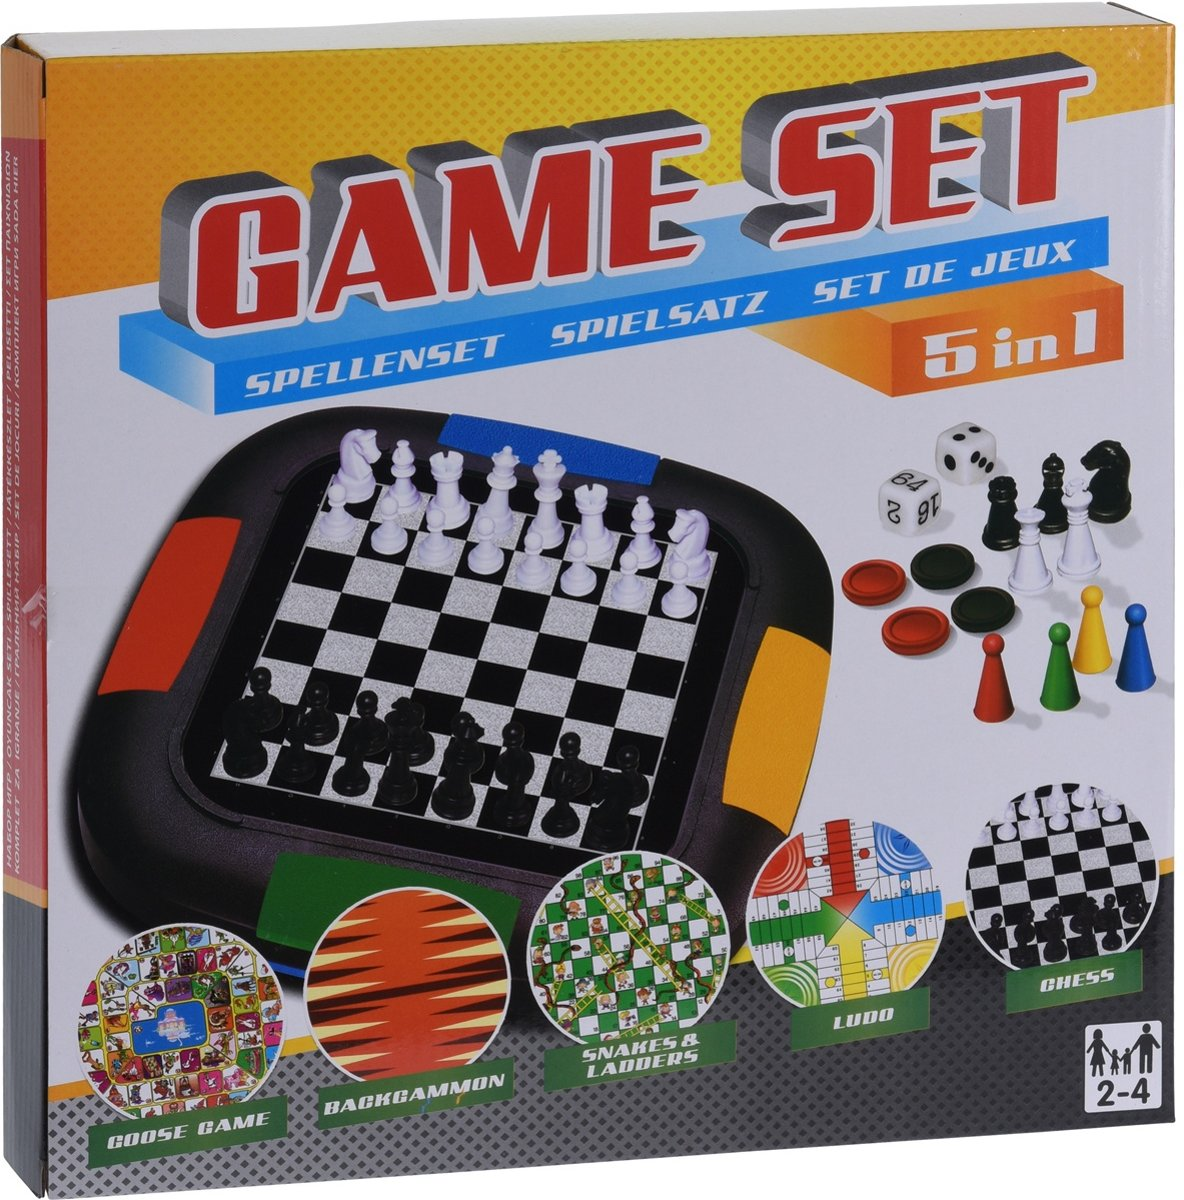 Free And Easy Spellenset Gameset 5-in-1